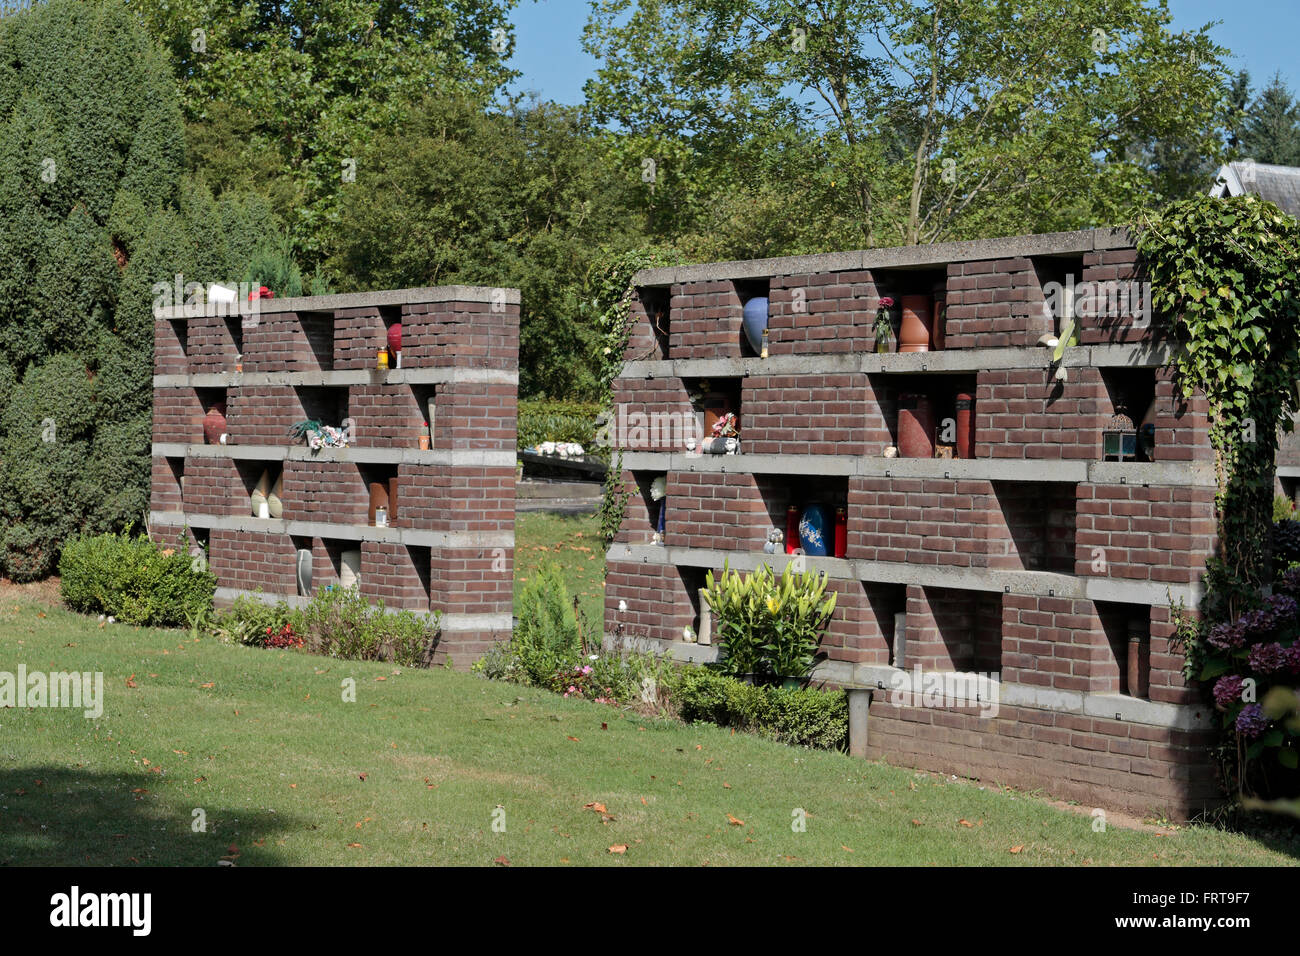 Stock Photo   Walls Displaying Cremated Ash Urns In The Urn Garden, Arnhem  (Moscowa) General Cemetery, Arnhem, Gelderland, Netherlands